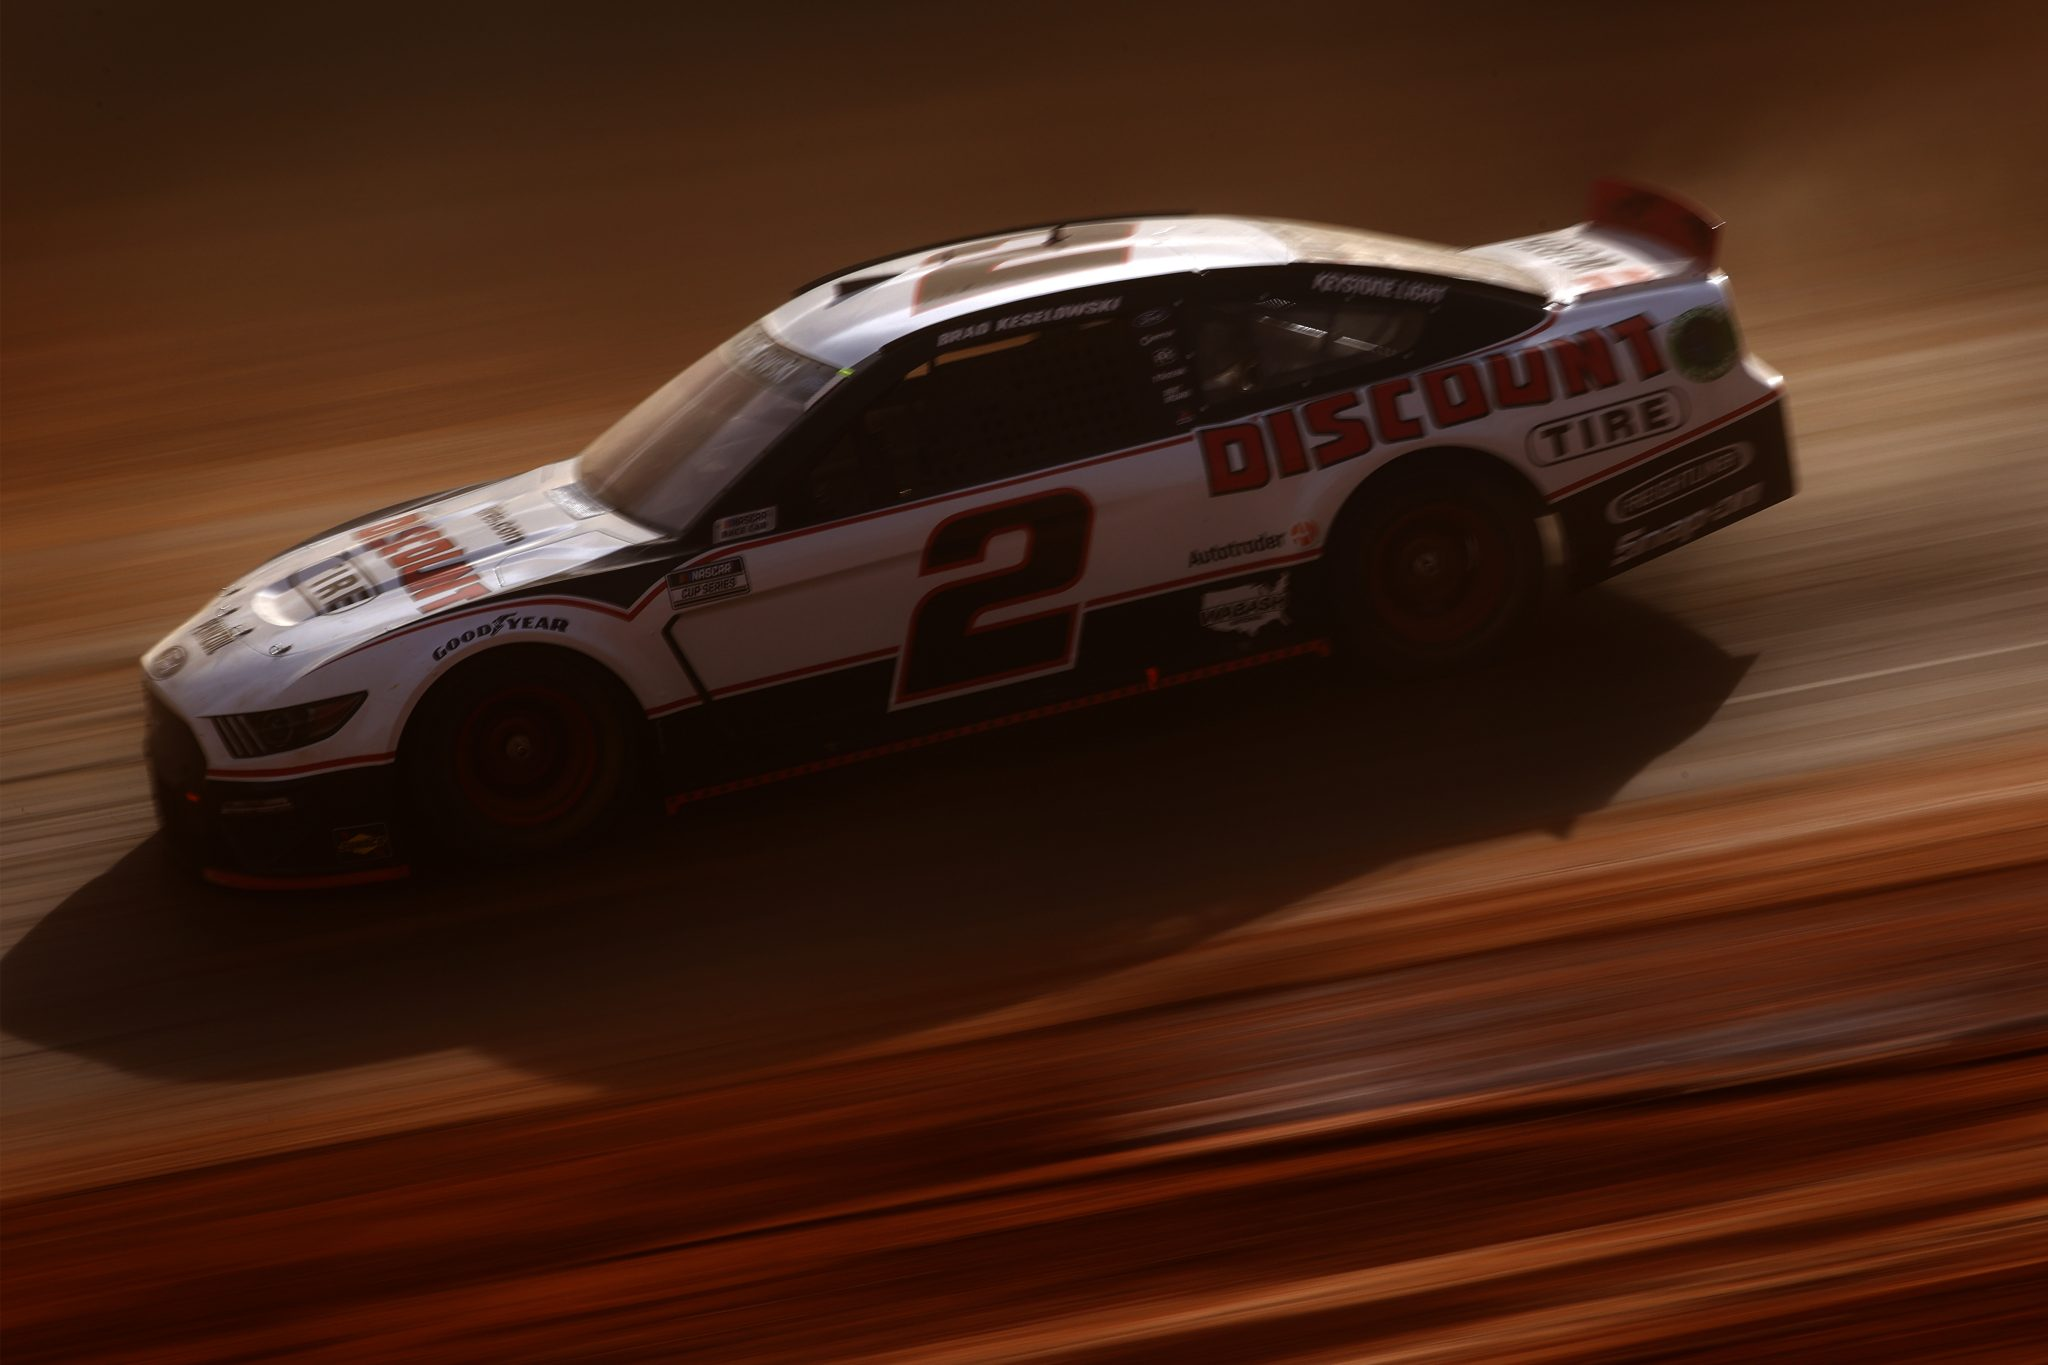 BRISTOL, TENNESSEE - MARCH 26: Brad Keselowski, driver of the #2 Discount Tire Ford, drives during practice for the NASCAR Cup Series Food City Dirt Race at Bristol Motor Speedway on March 26, 2021 in Bristol, Tennessee. (Photo by Chris Graythen/Getty Images)   Getty Images